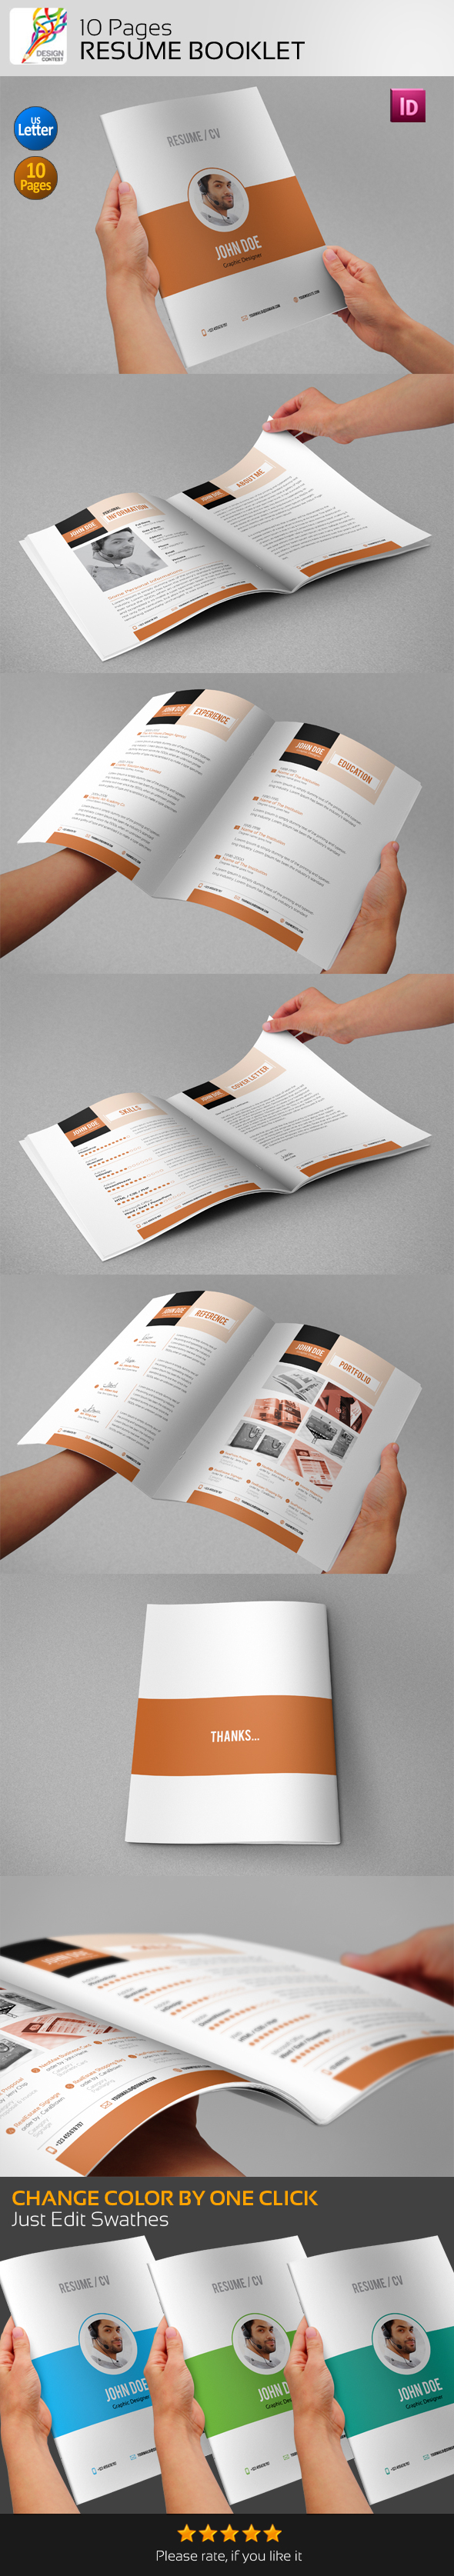 Resume Booklet  Pages On Behance